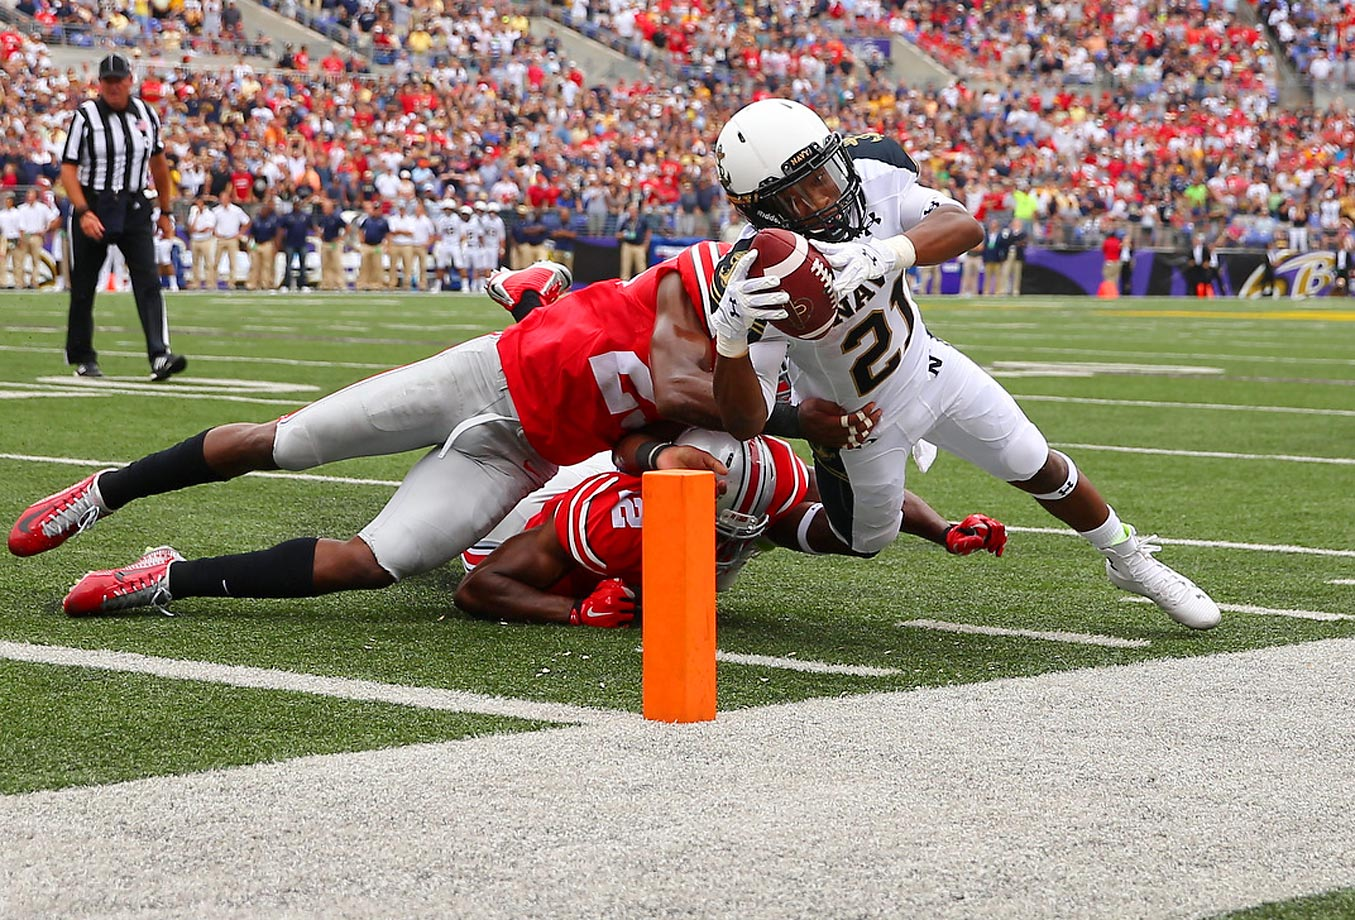 DeBrandon Sanders of Navy scores a 1-yard rushing touchdown against Doran Grant (12) and Tyvis Powell of the Ohio State Buckeyes.